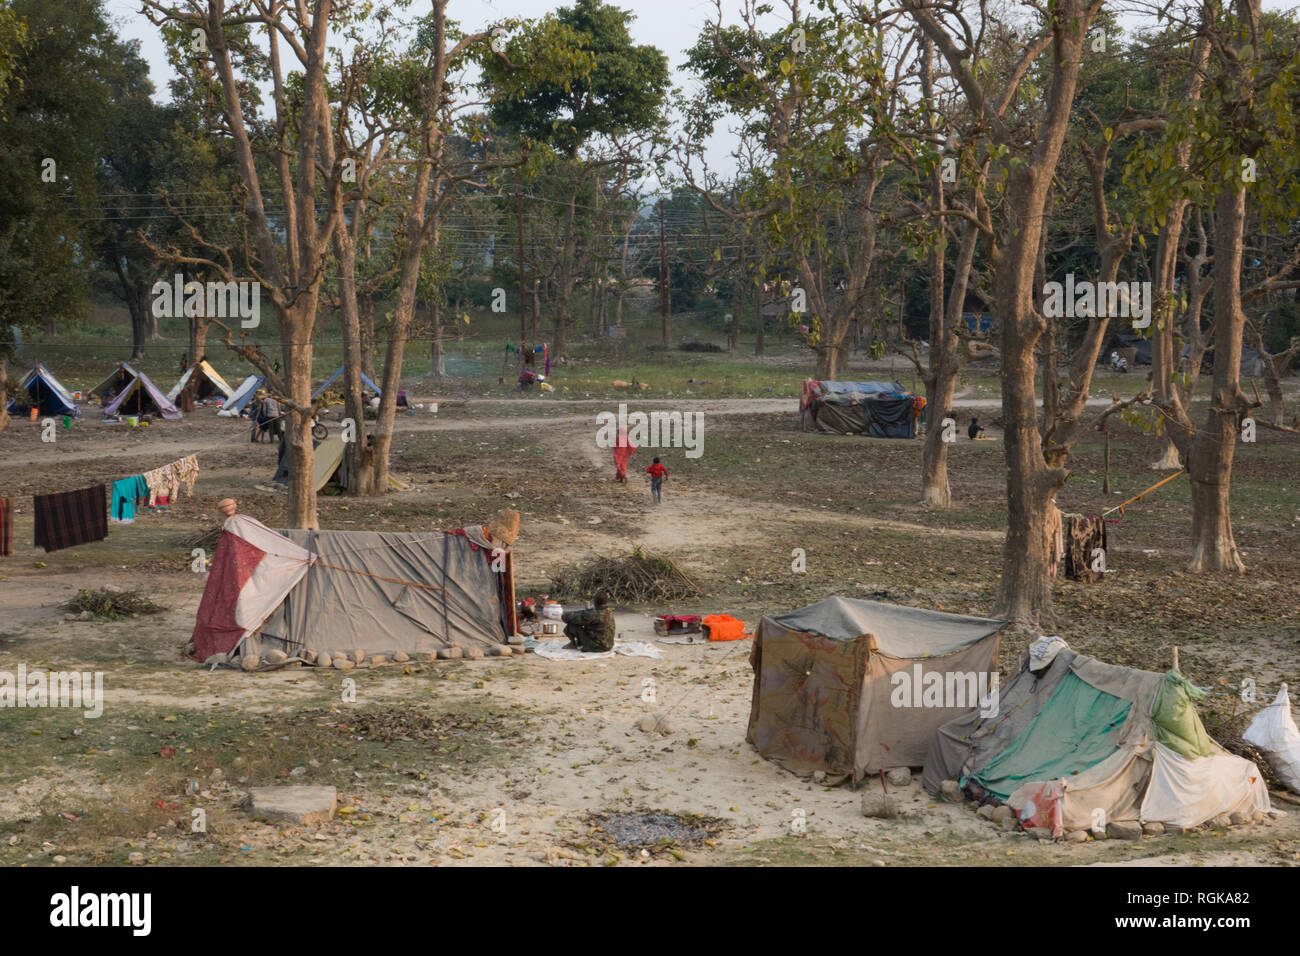 Community of people living in tents in the forest on the outskirts of Haridwar, Uttarakhand, India - Stock Image